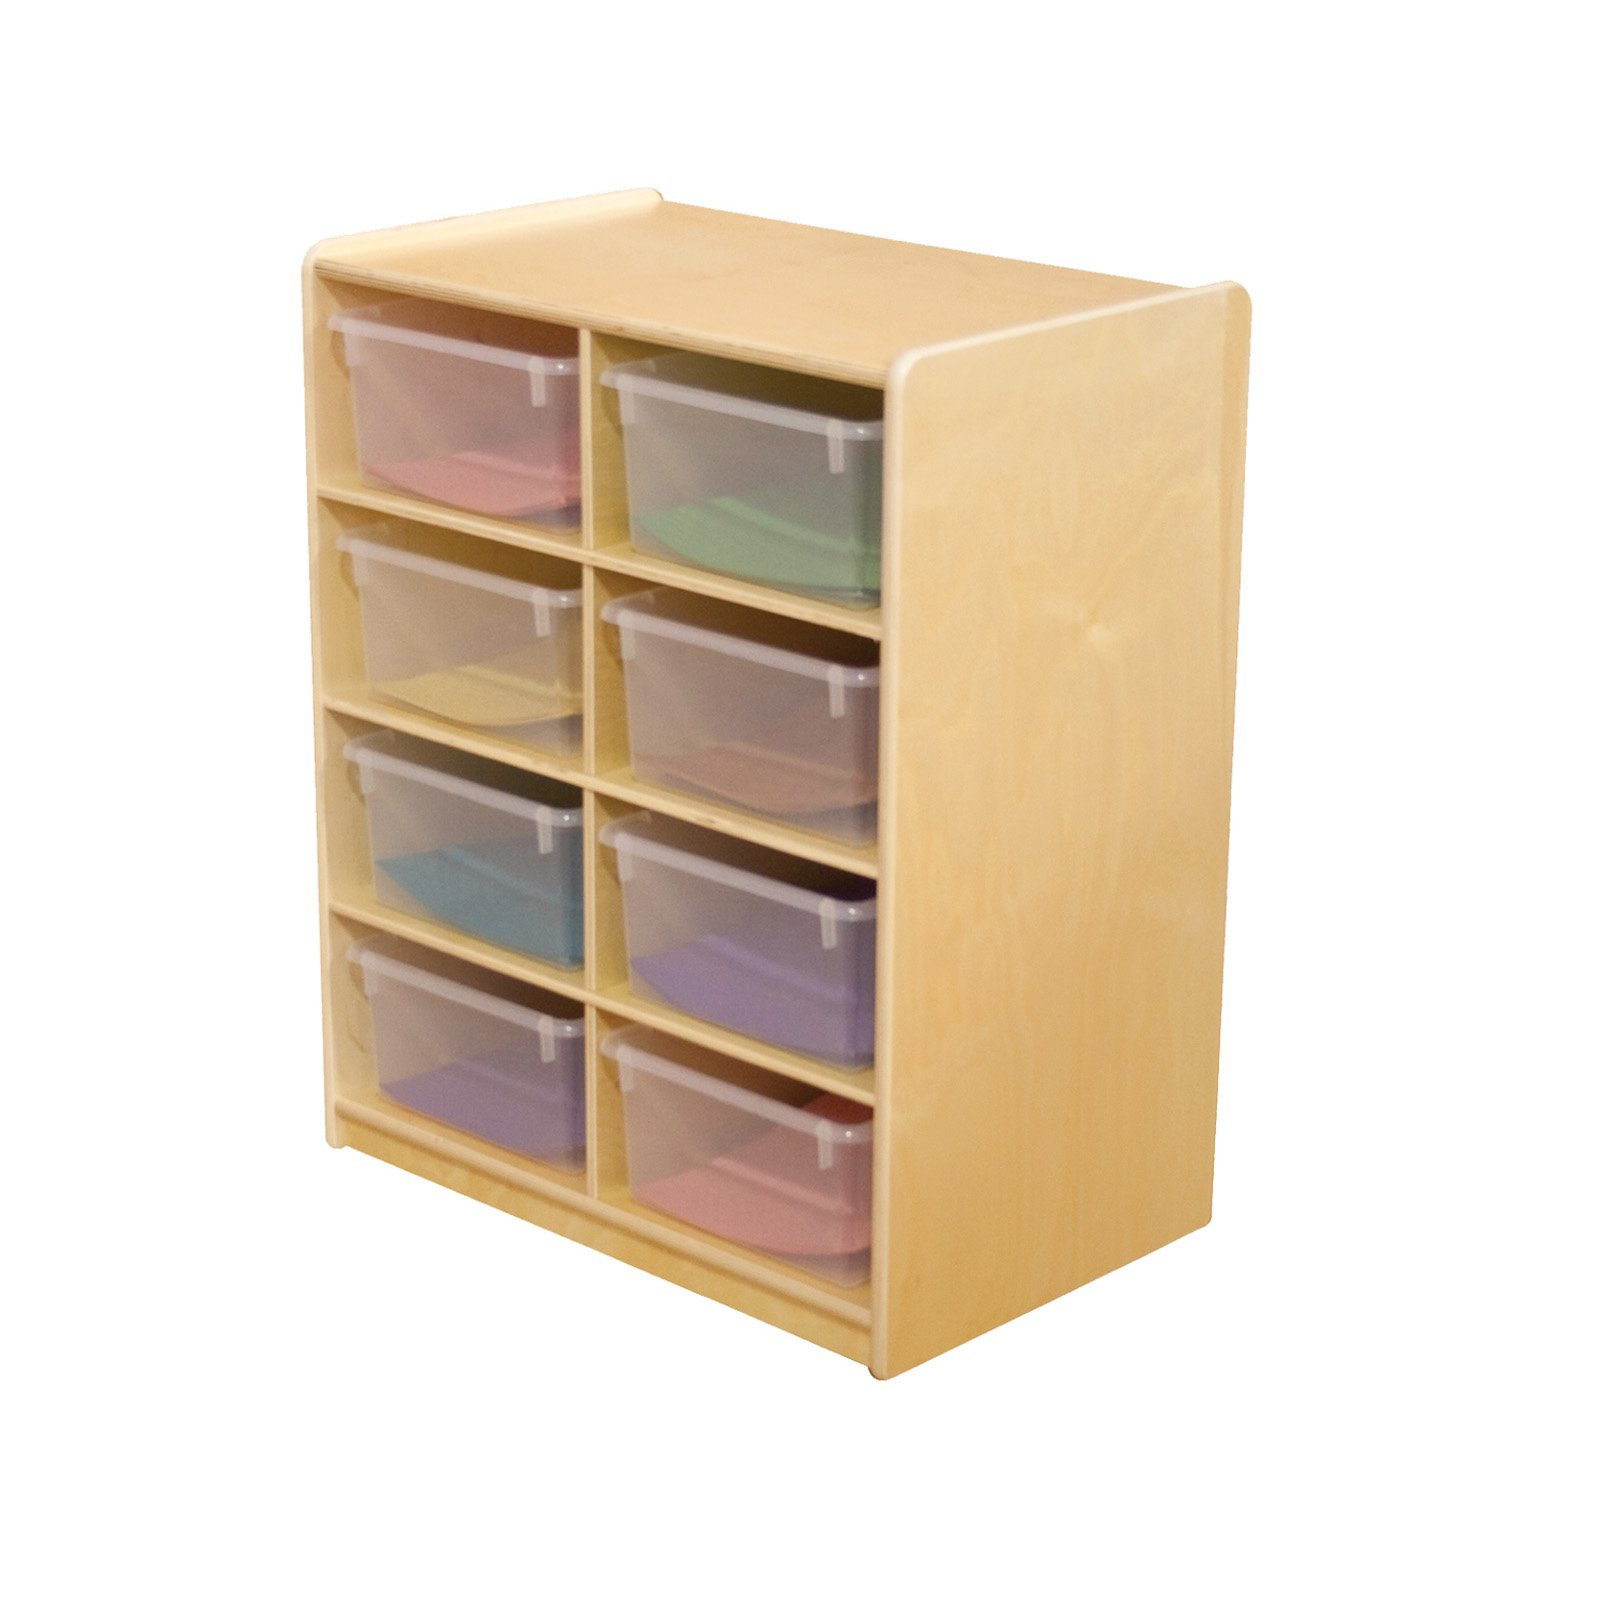 Wood Designs 8 Letter Tray Storage Unit with 5 in. Trays